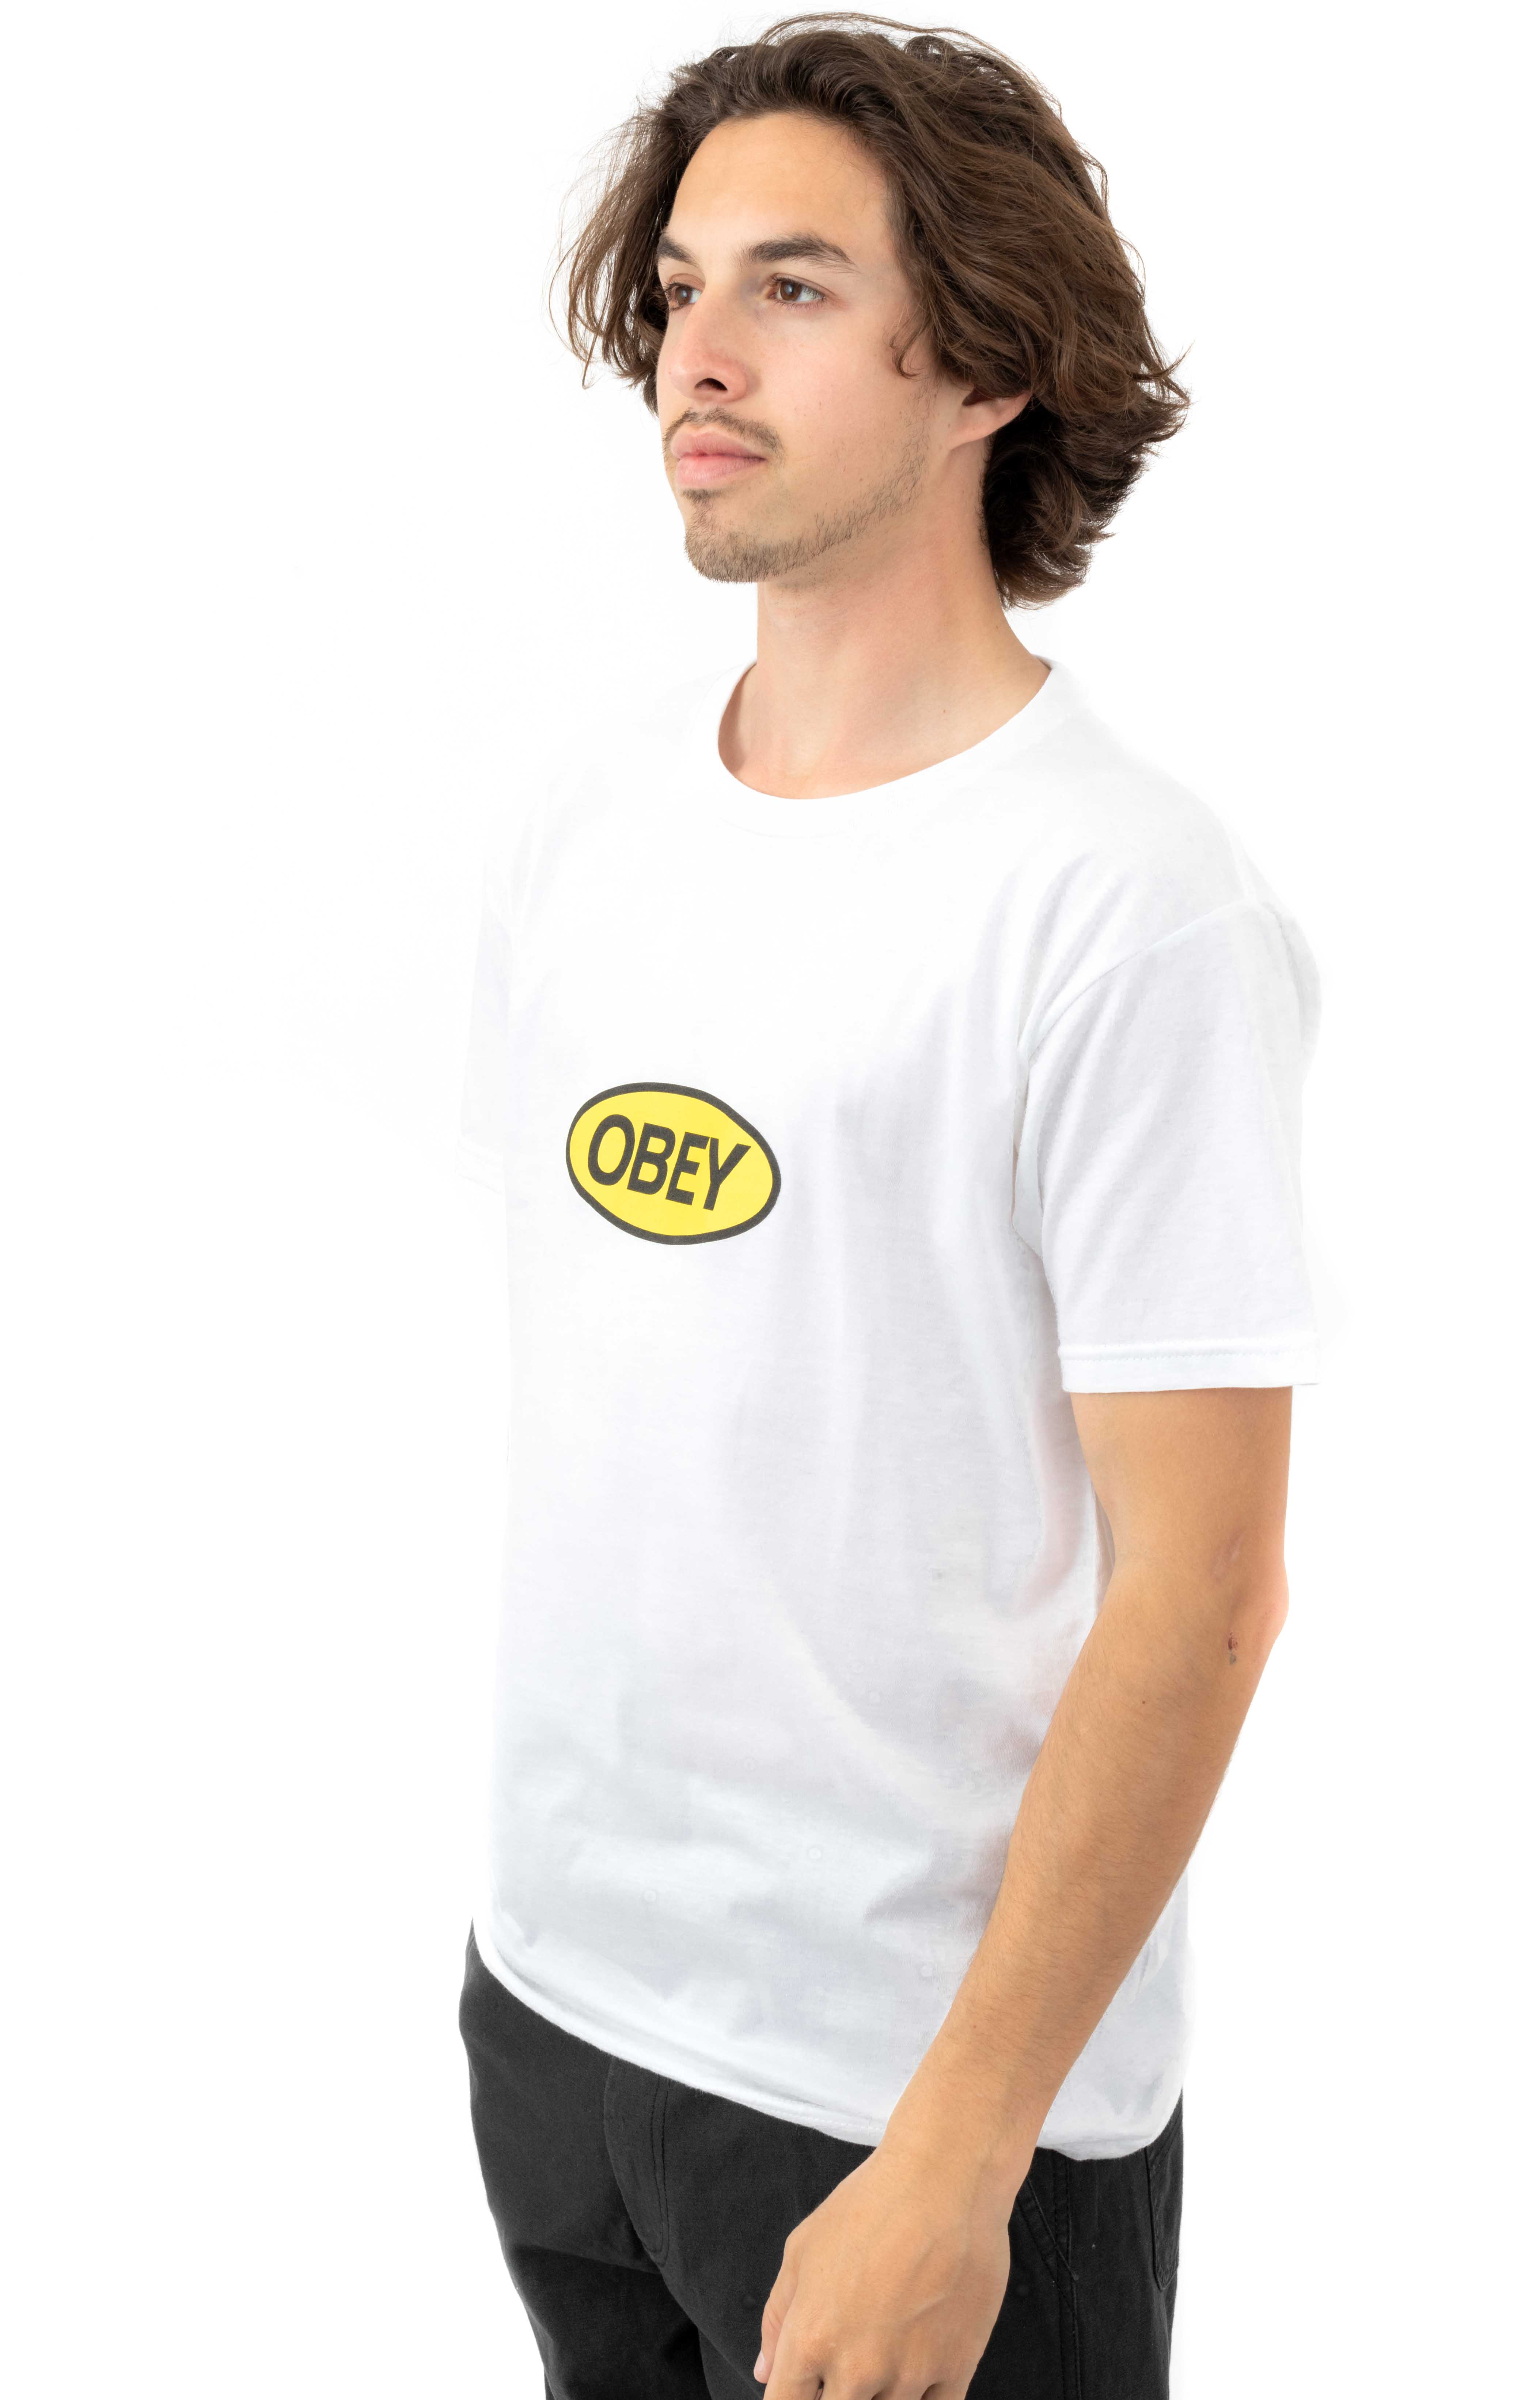 Obey Stacked T-Shirt - White  3